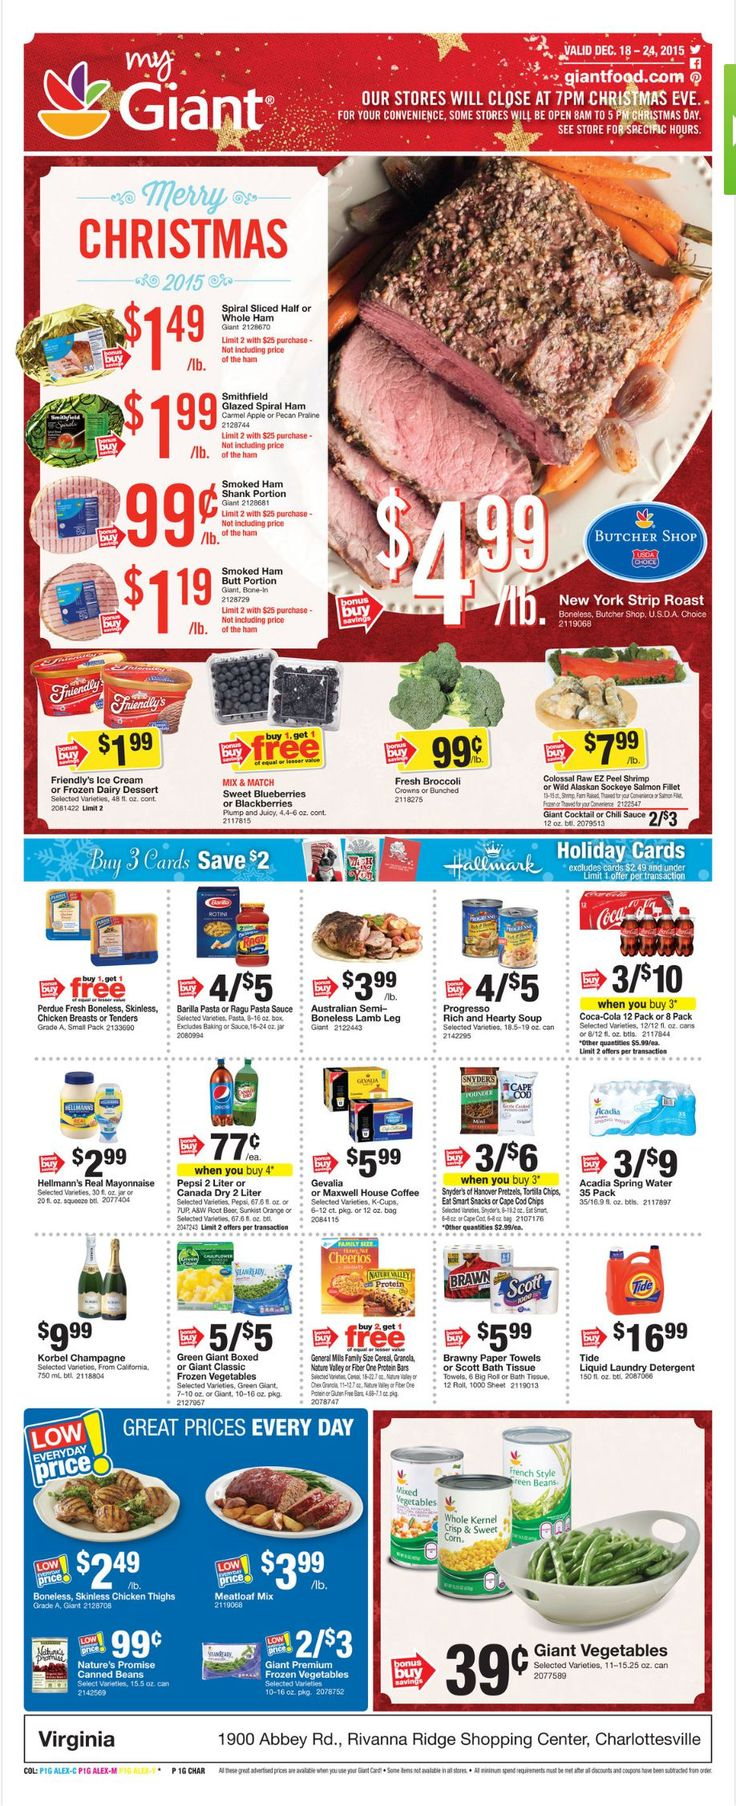 Giant Food Weekly Ad December 18 - 24, 2015 - http://www.olcatalog.com/grocery/giant-food-weekly-ad.html